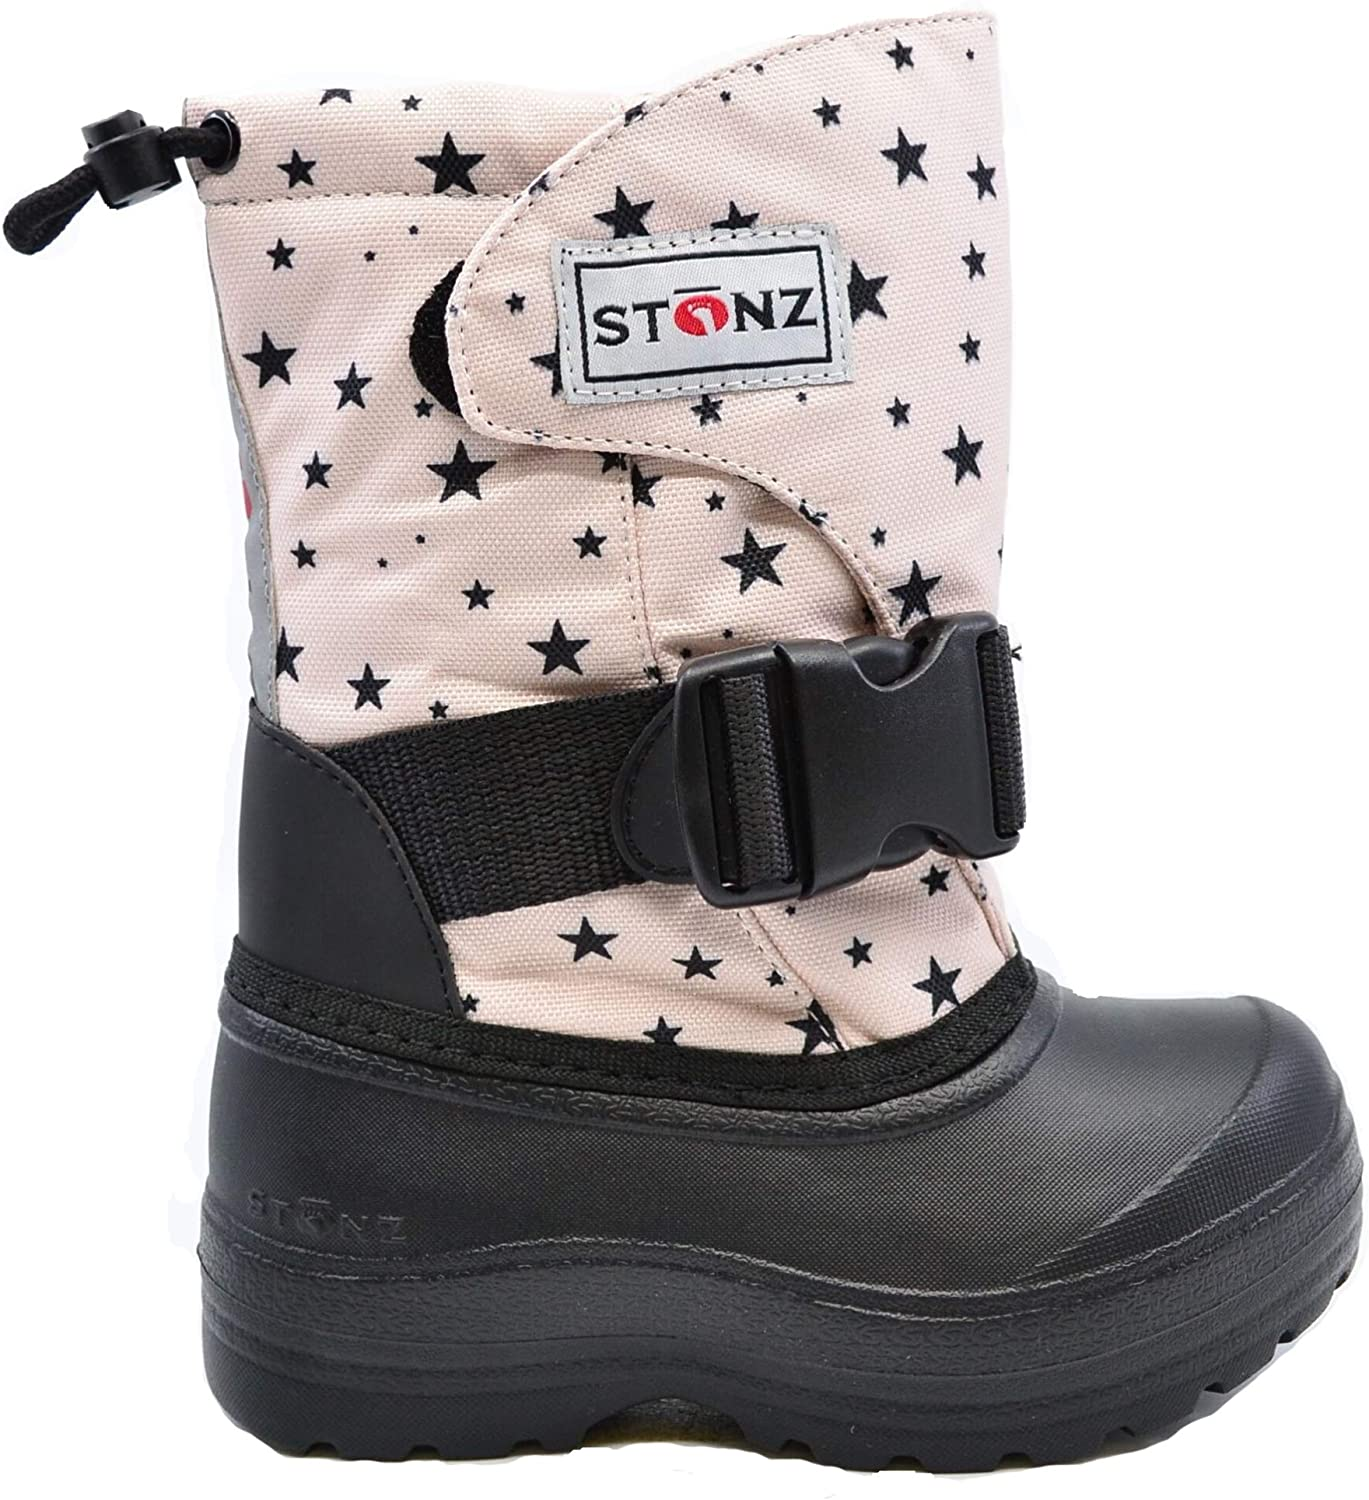 Stonz Cold Weather Snow Boots Super